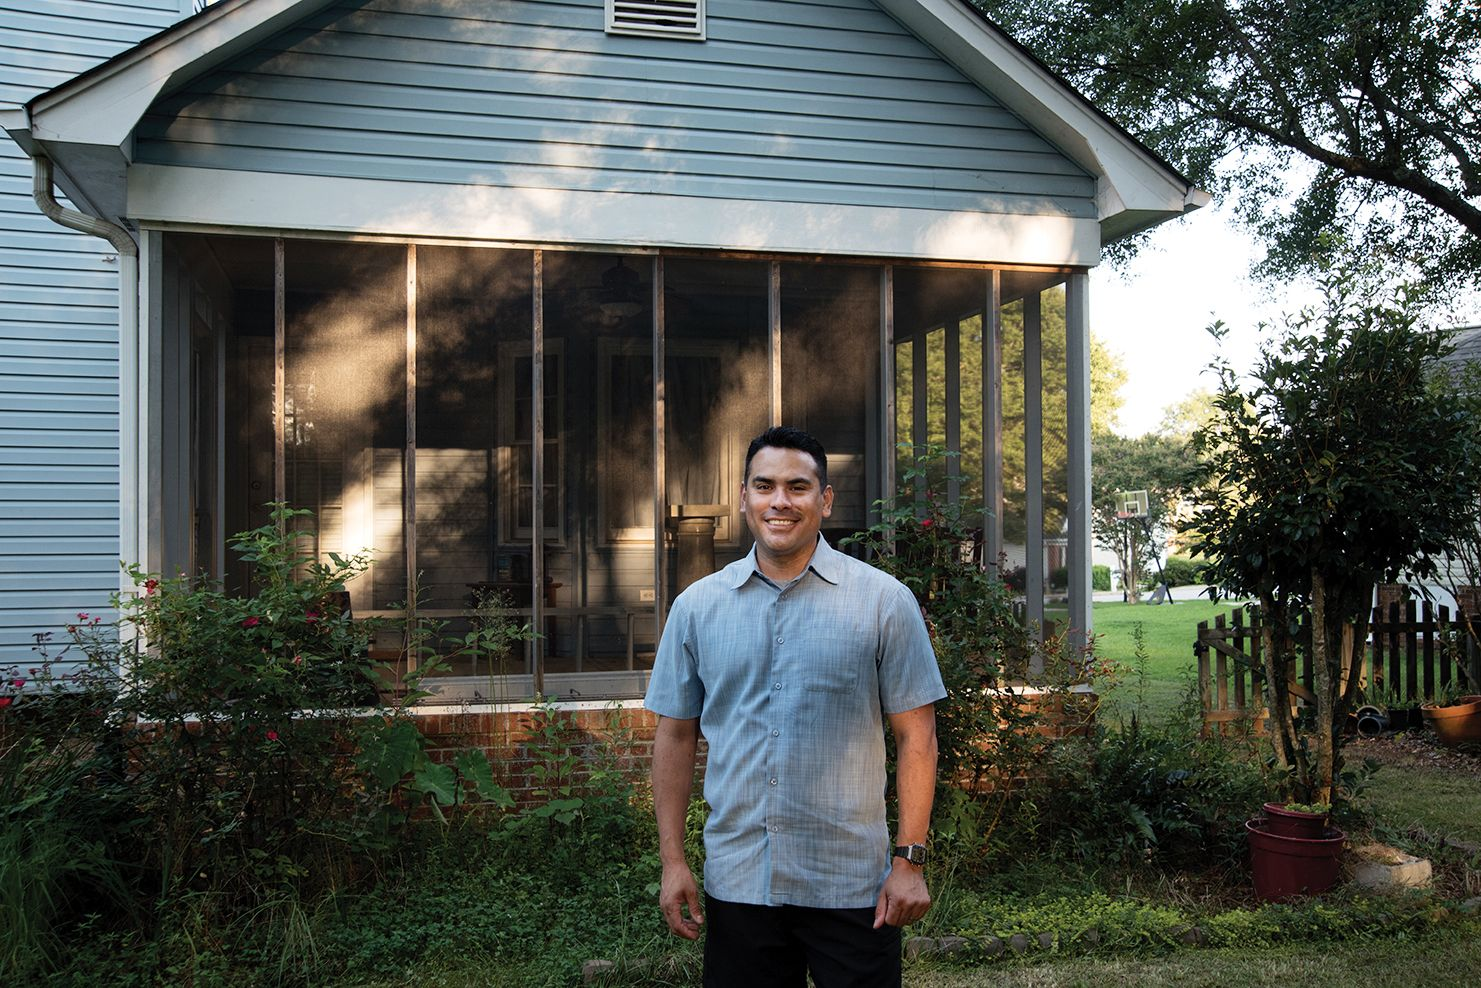 Manuel Gonzalez studied mechatronics, a new field combining mechanics and electronics, but found it too slow-paced and is now an apprentice machinist. (4 of 10)